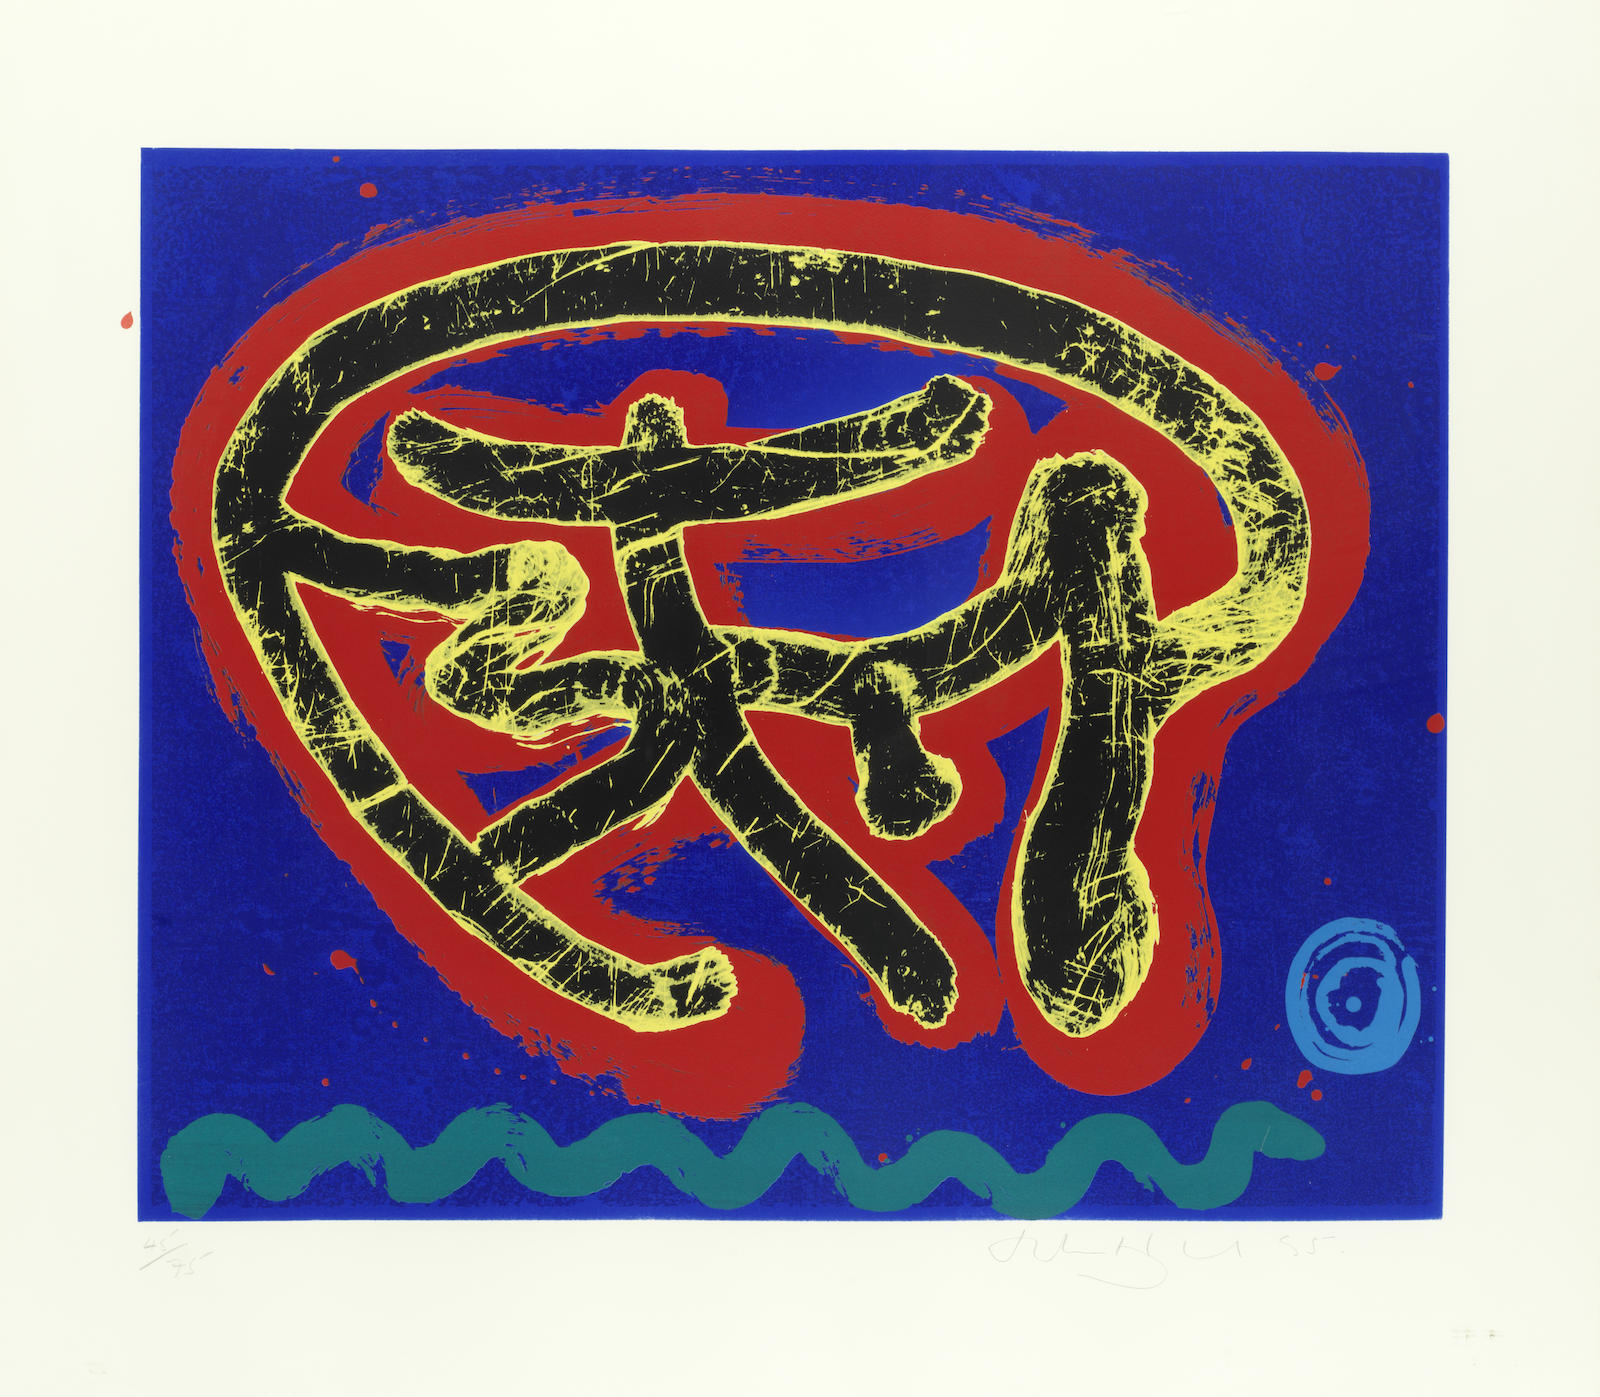 'Wonderer' (Black Swirl on Red and Blue; Black Swirl on Green and Red)-1995